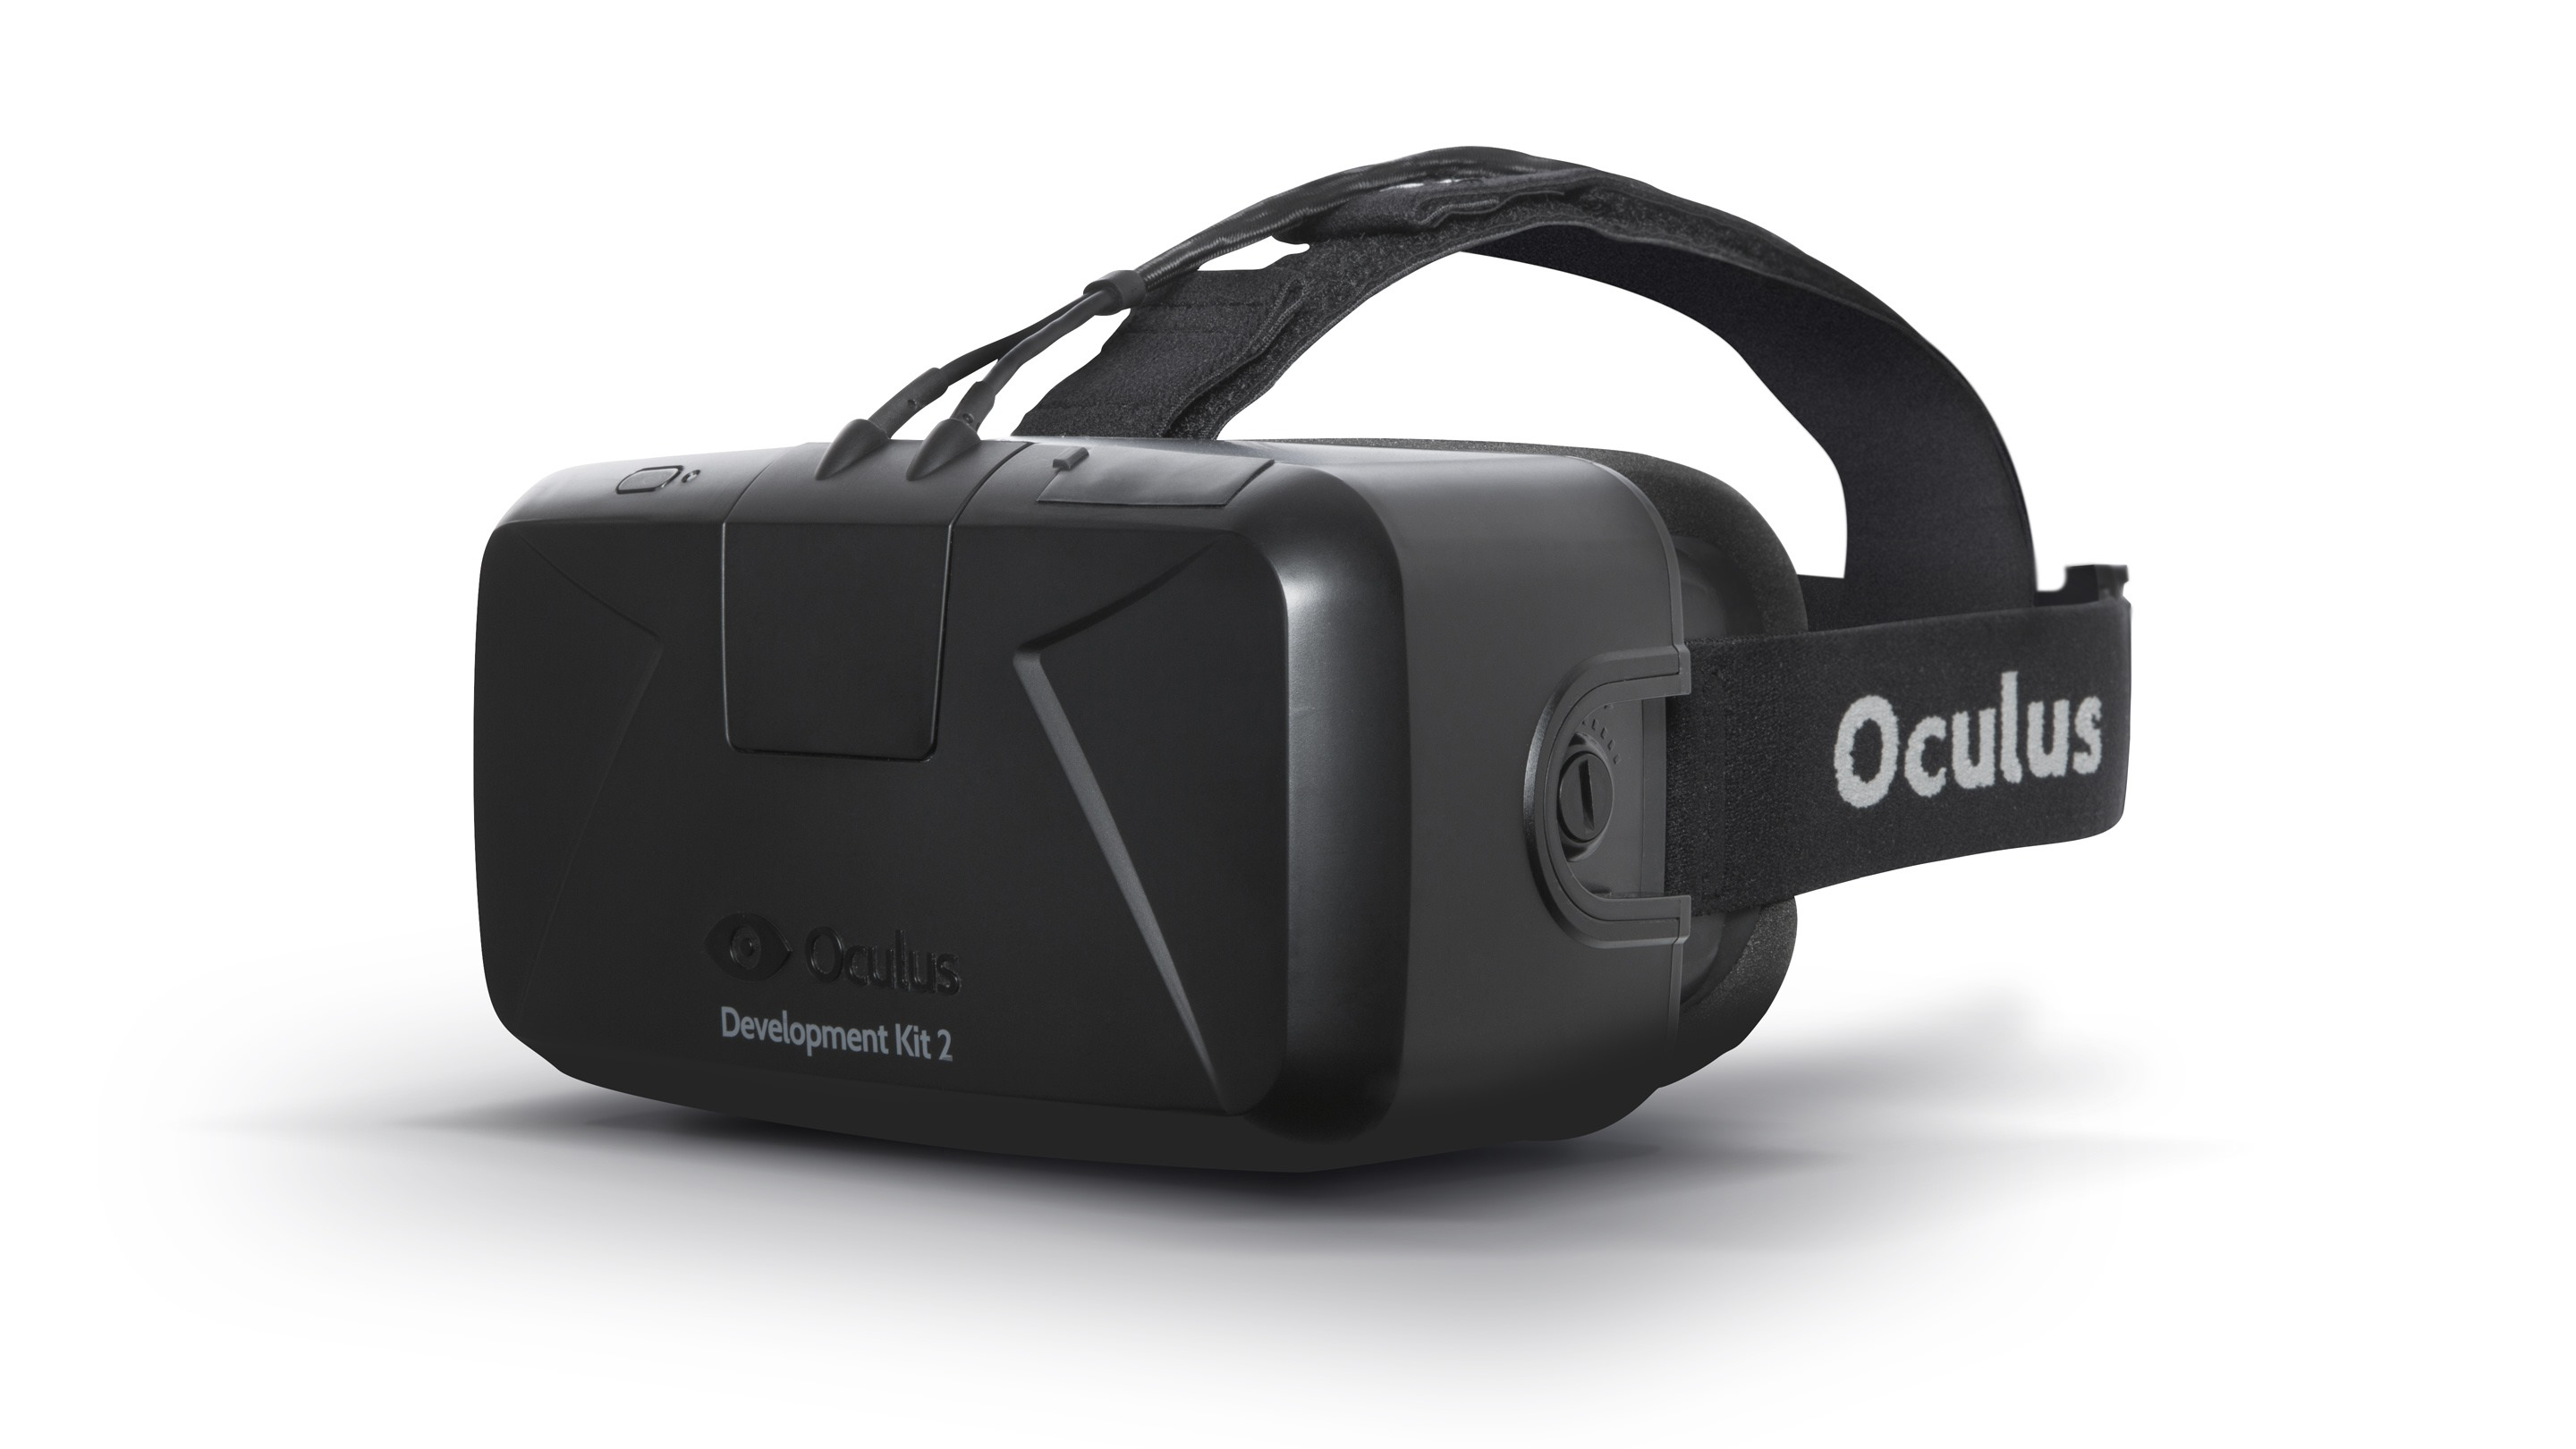 Oculus Rift DK2: The world is ready for virtual reality